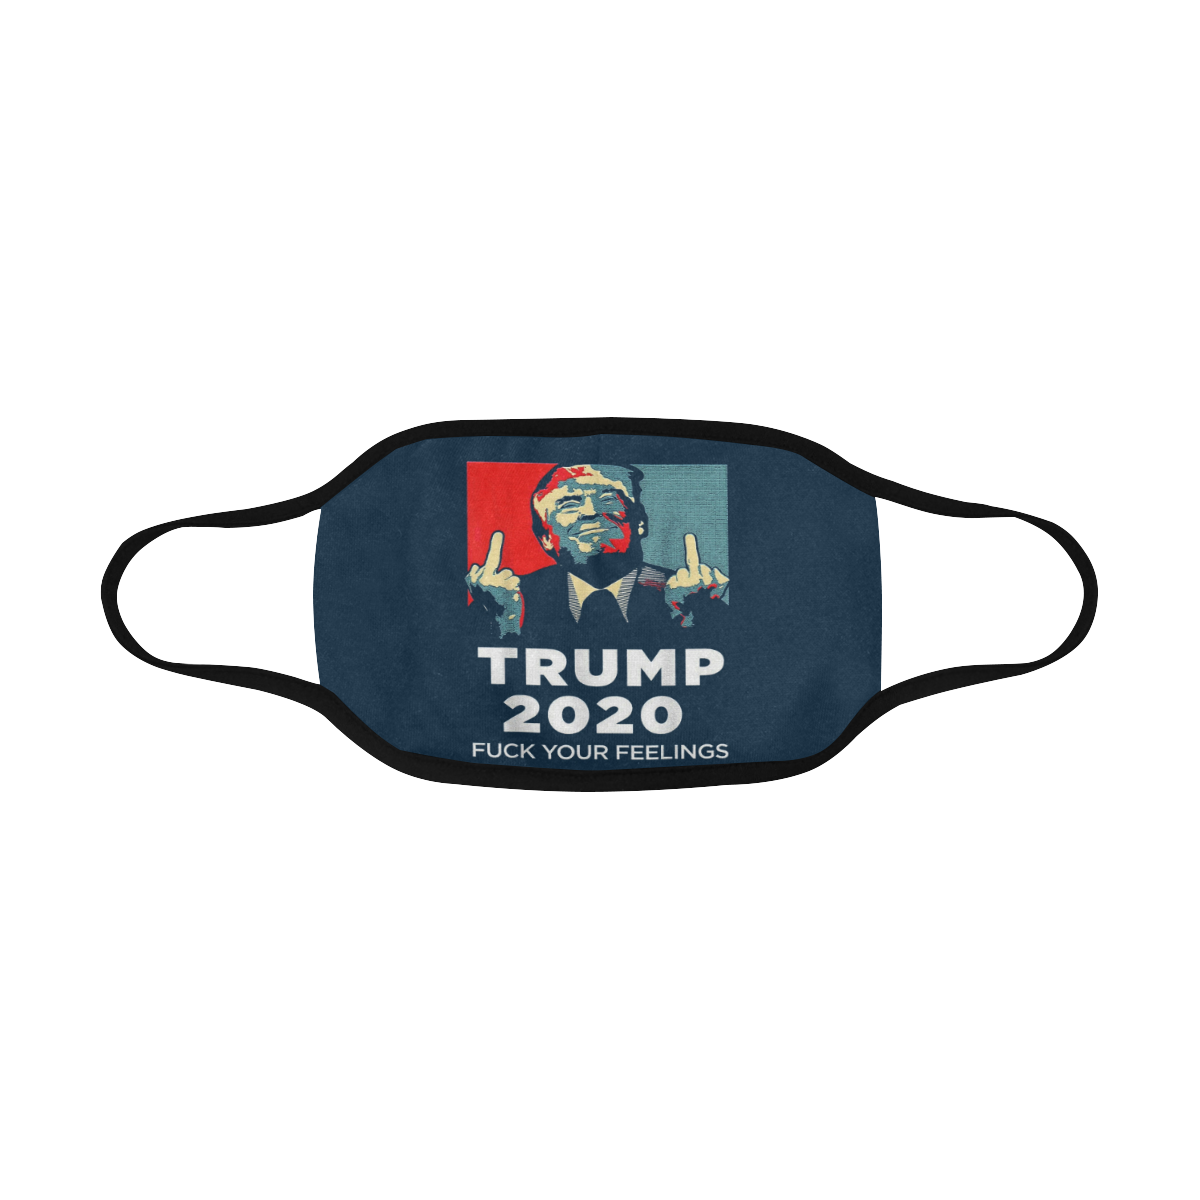 Donald Trump 2020 FUCK Your Feelings Face Mask